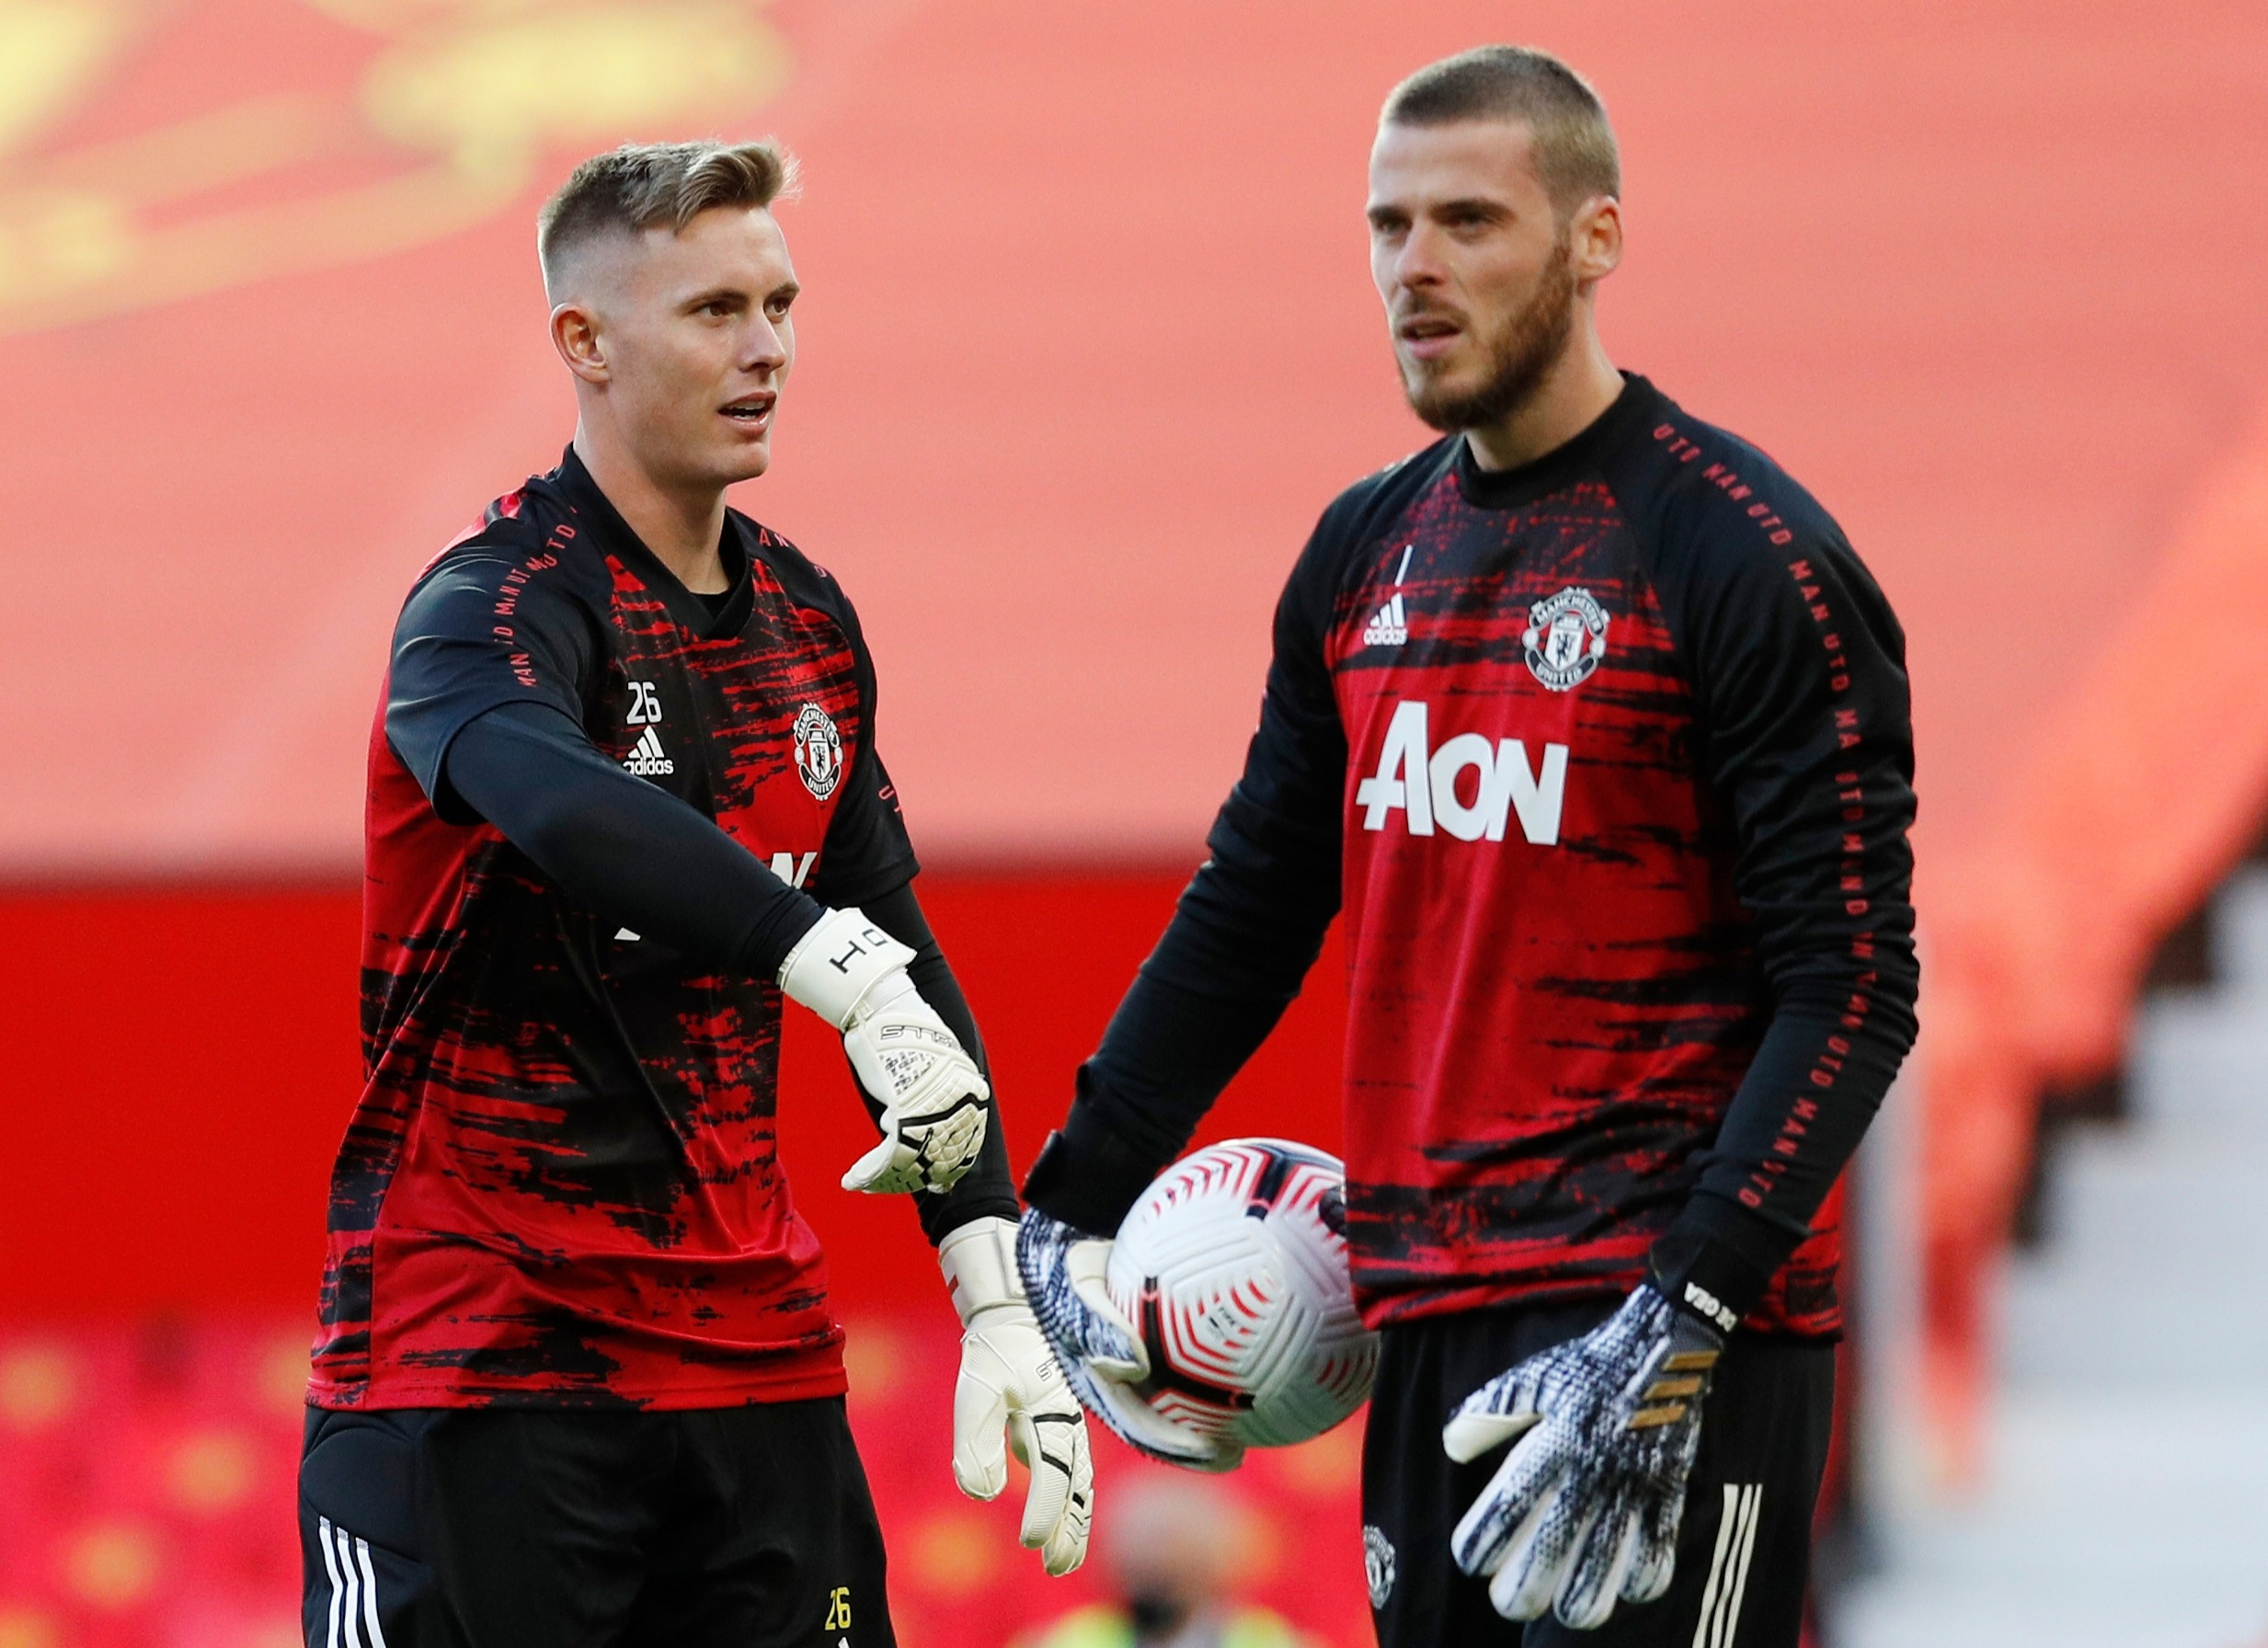 De Gea Vs Henderson - The Numbers - Goalkeepers Anonymous